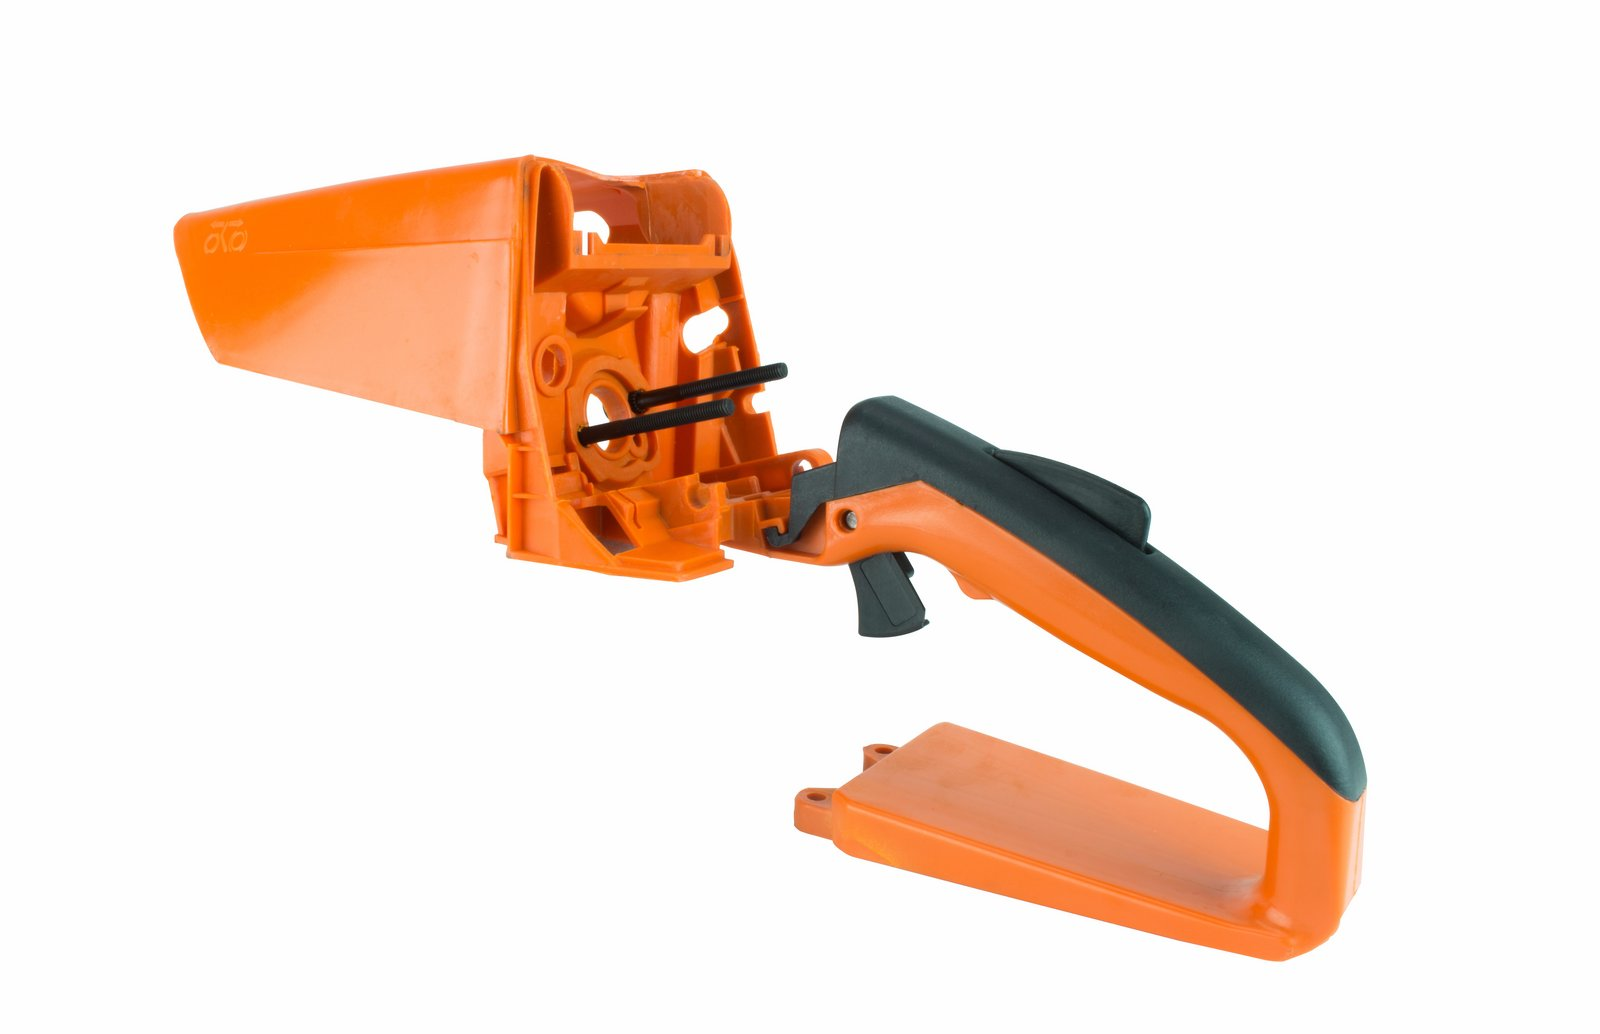 Stihl 025 Throttle Diagram Trusted Wiring Addition Chainsaw Parts On Echo Eope 1123 790 1013 Handle Bar Housing Cylinder Cover Assembly Rh Walmart Com Saw Online